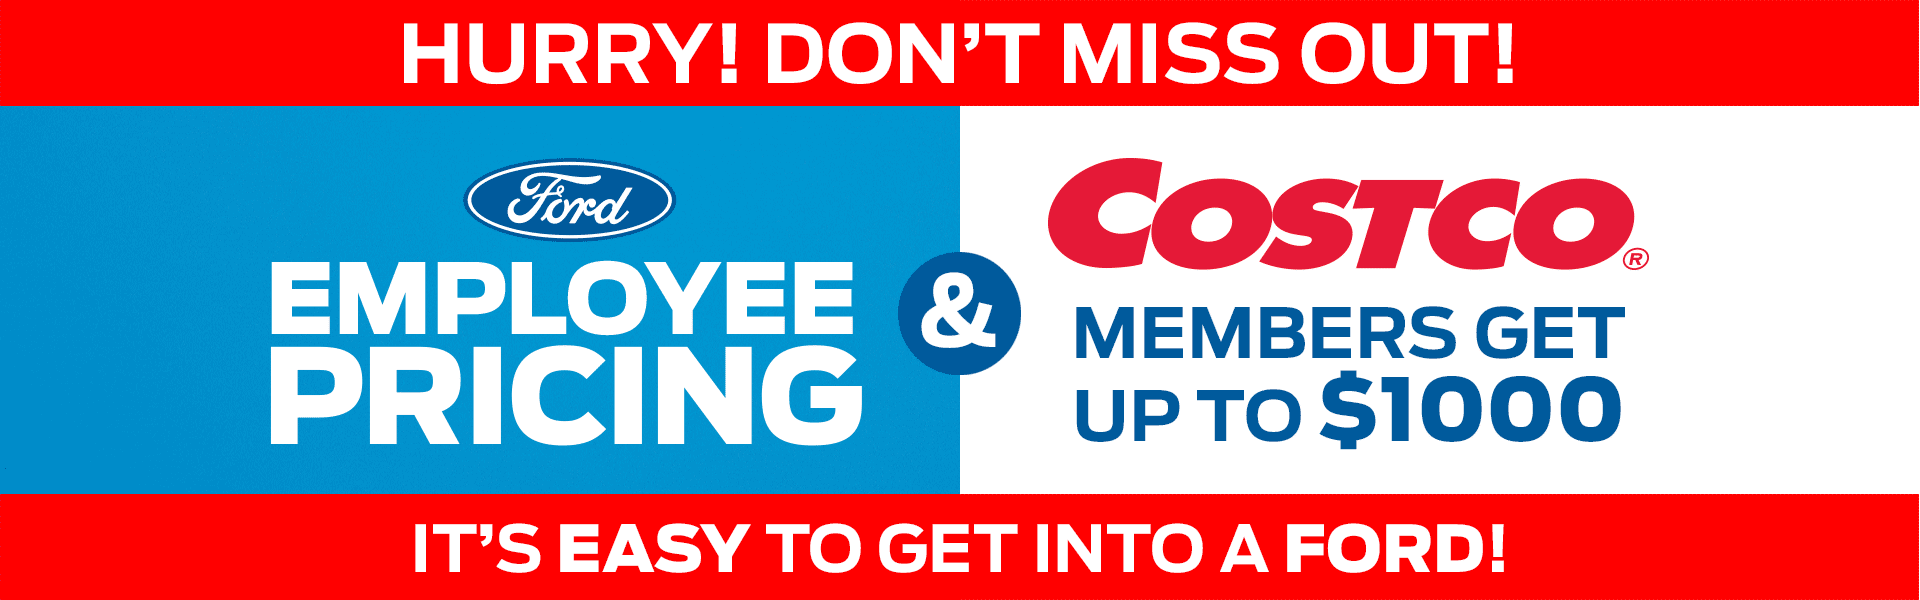 Costco Members Save $1000!